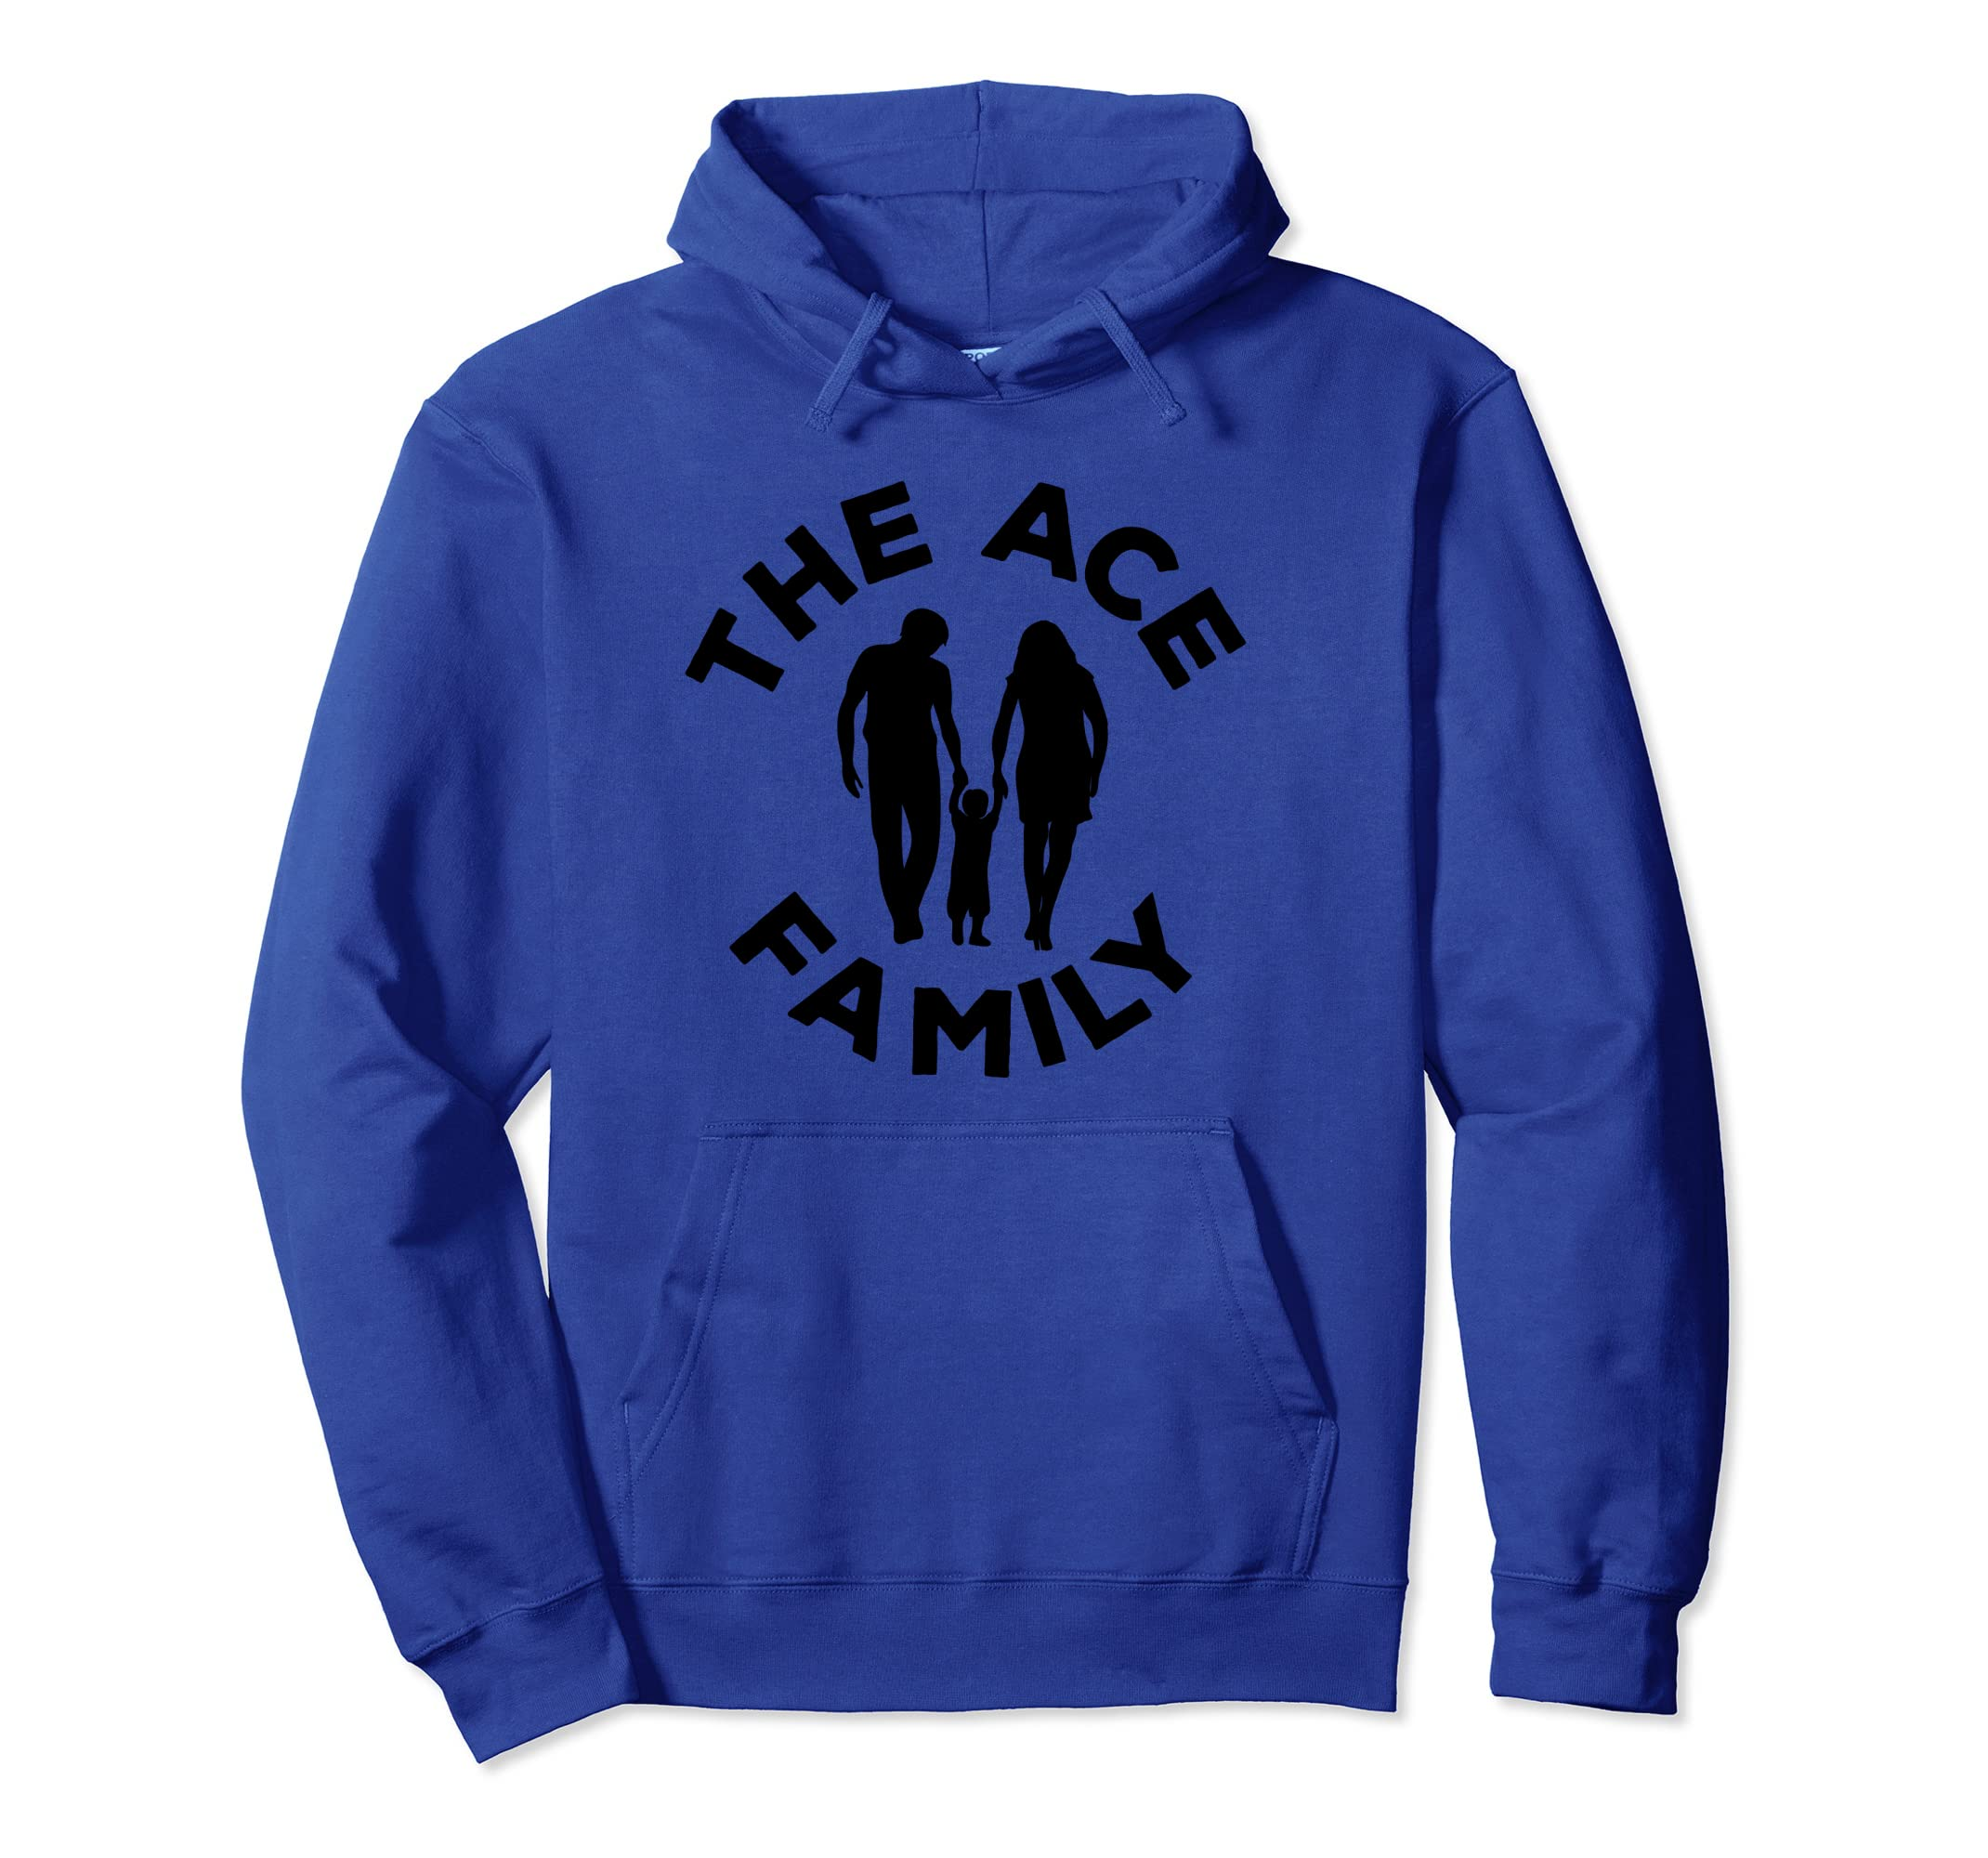 e8e574d1d Amazon.com  Ace Family super cool Hoodie  Clothing